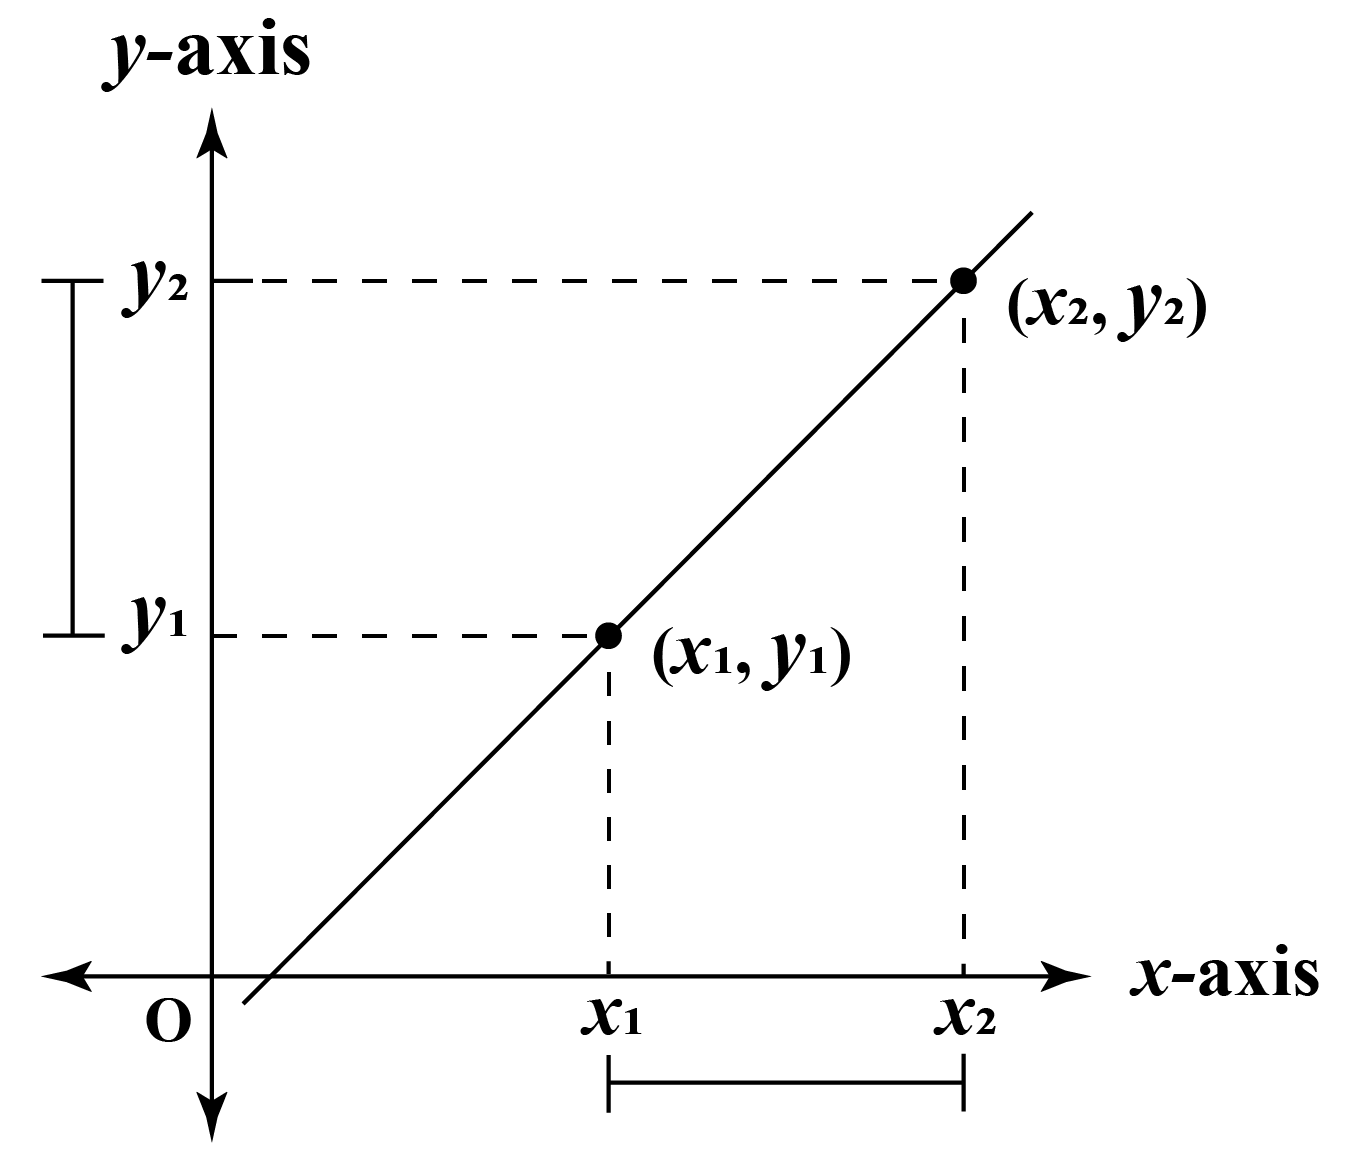 Slope from two points on a Line